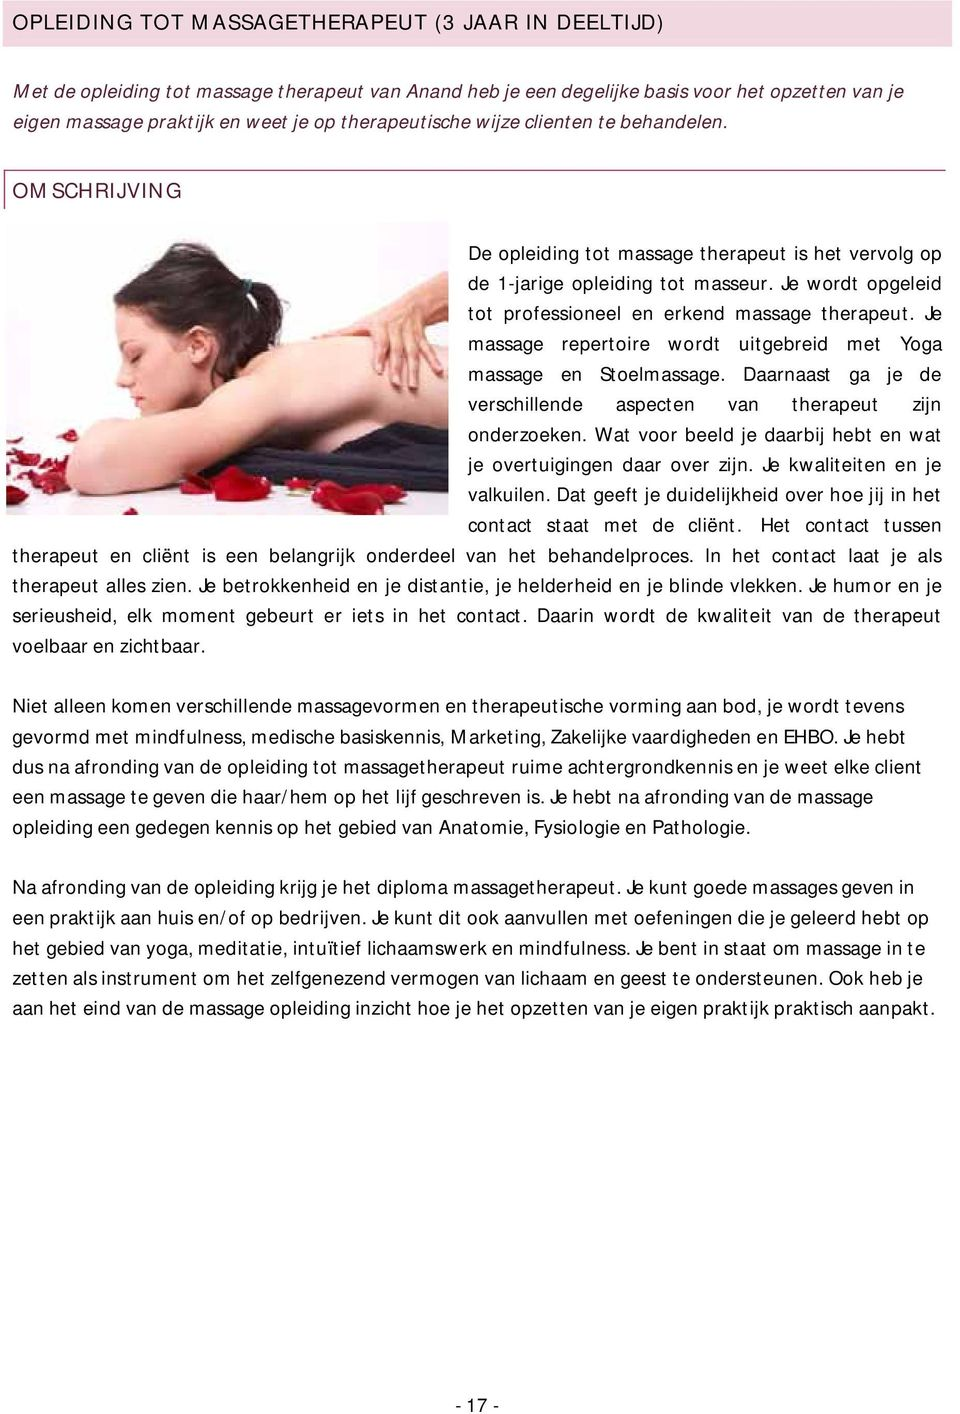 Je wordt opgeleid tot professioneel en erkend massage therapeut. Je massage repertoire wordt uitgebreid met Yoga massage en Stoelmassage.